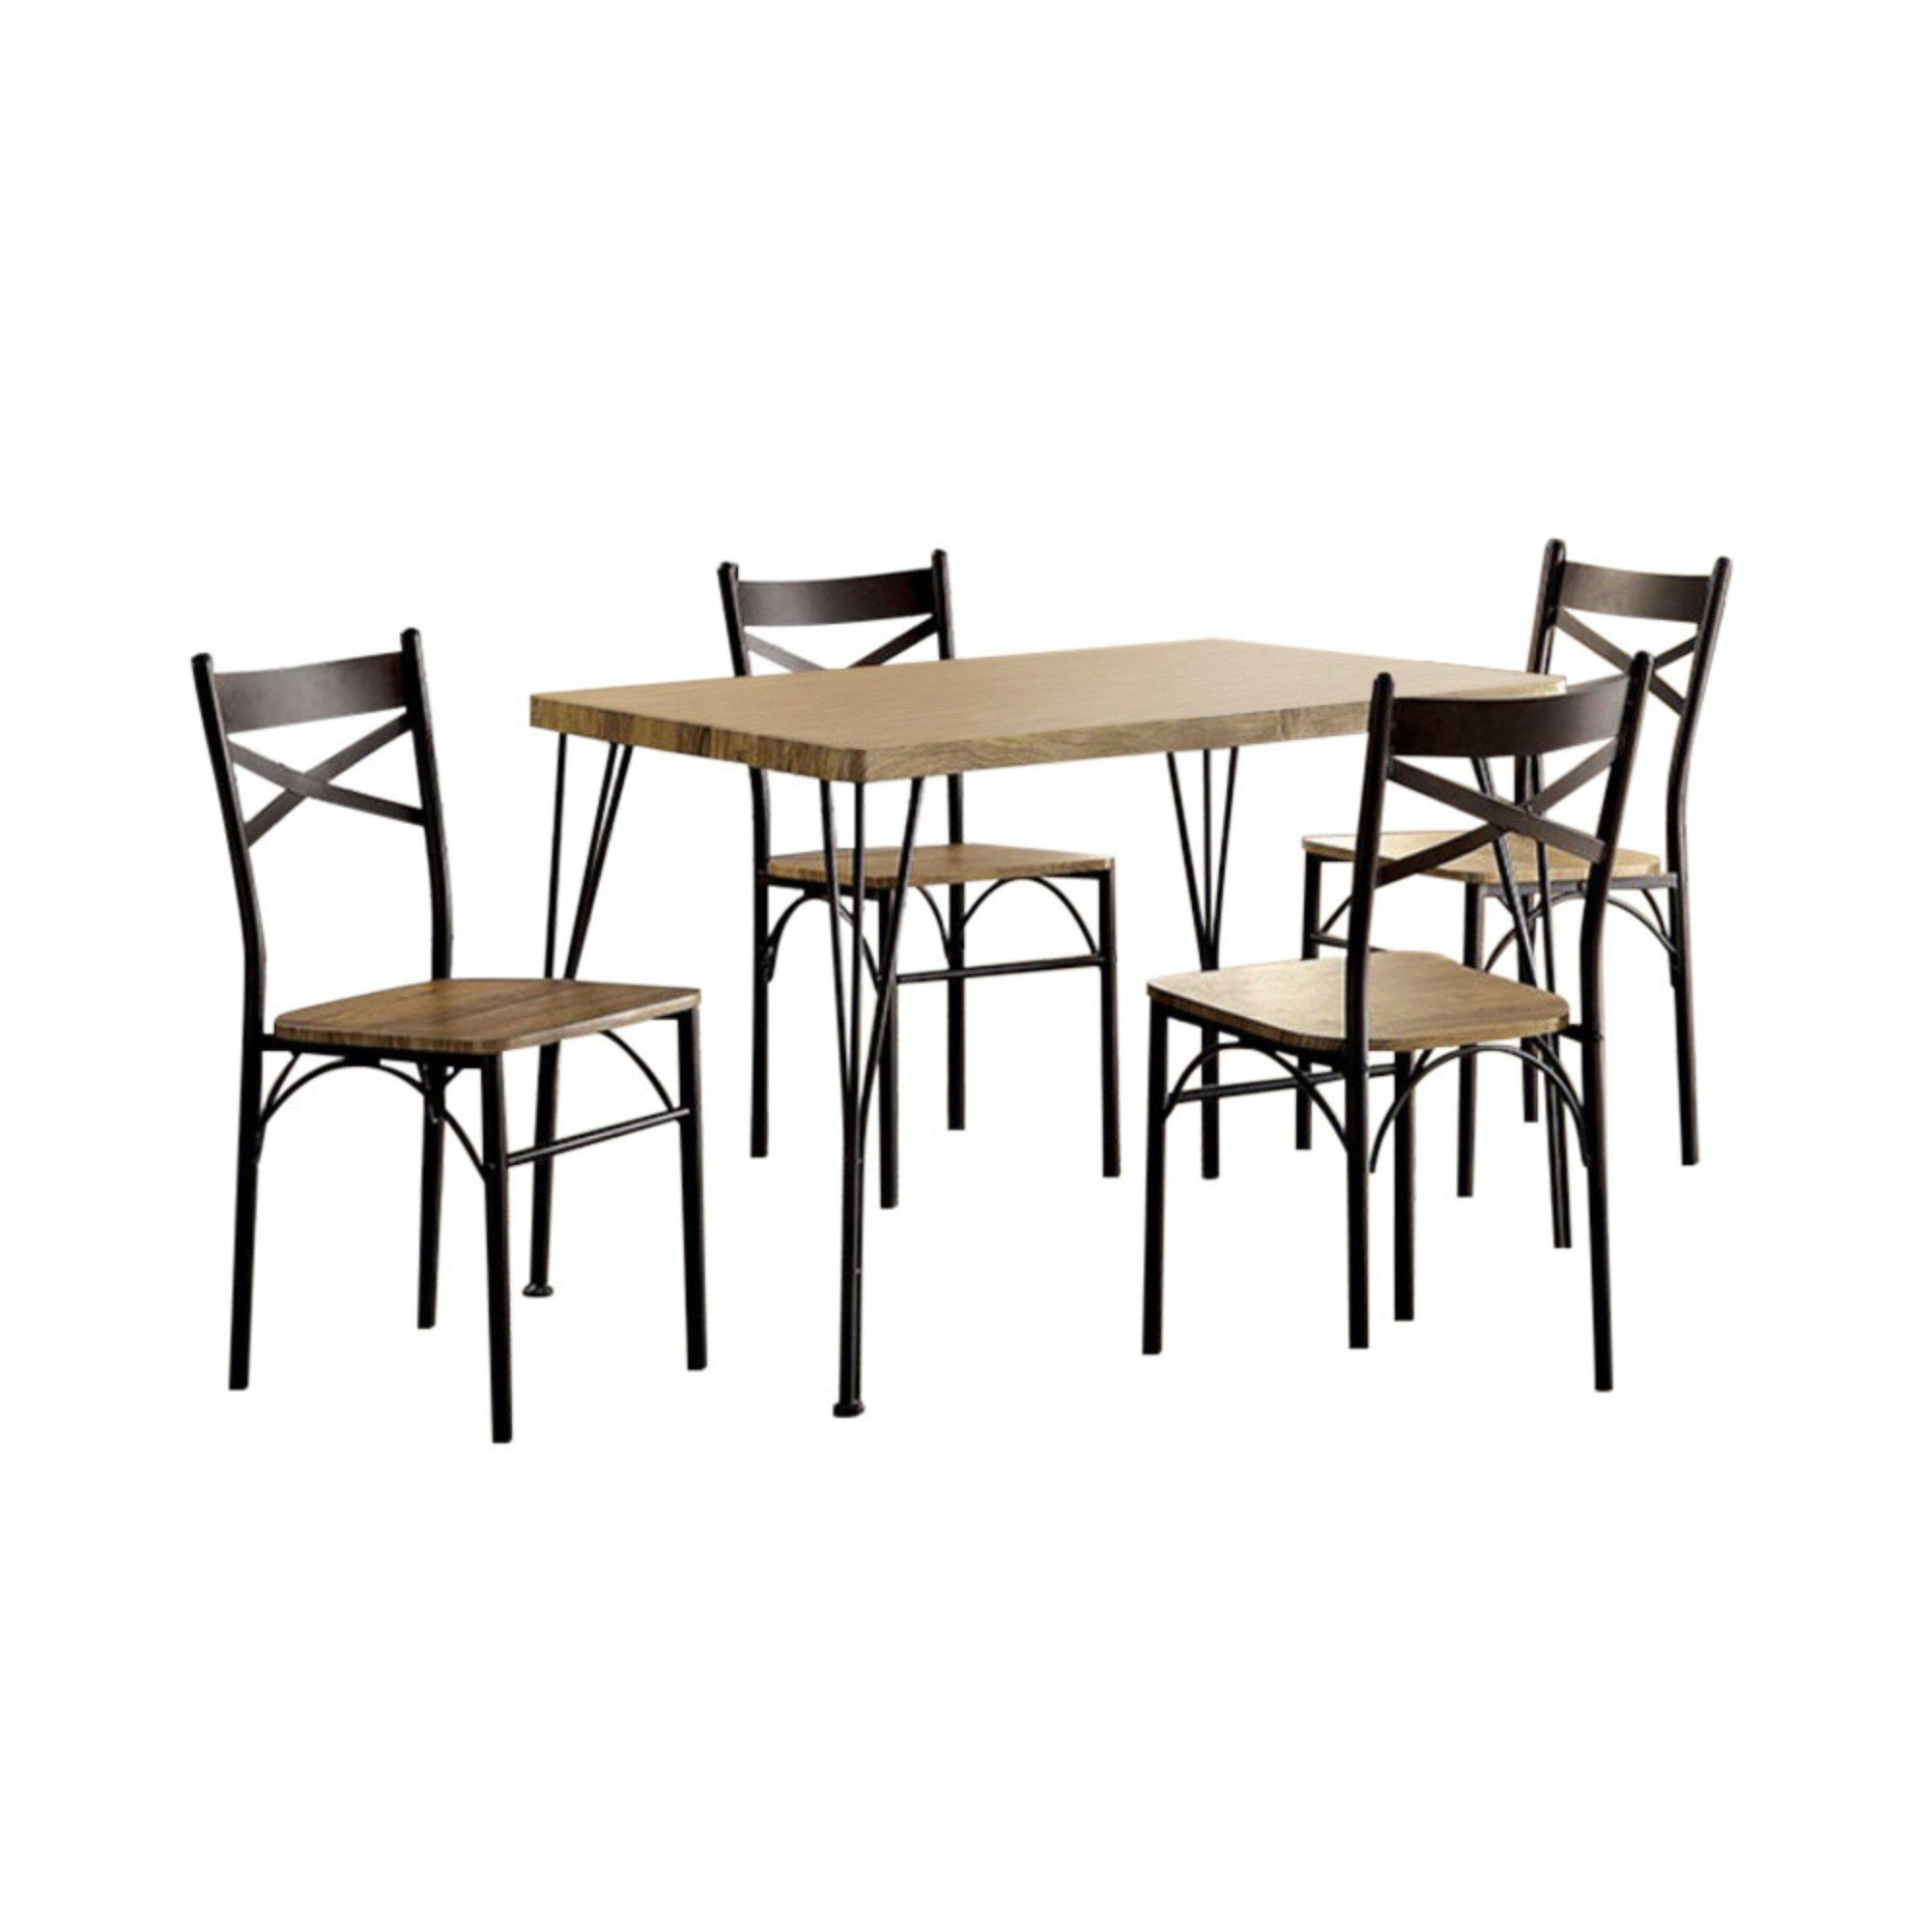 Owasco 5 Piece Dining Set With Regard To Best And Newest Casiano 5 Piece Dining Sets (View 5 of 20)